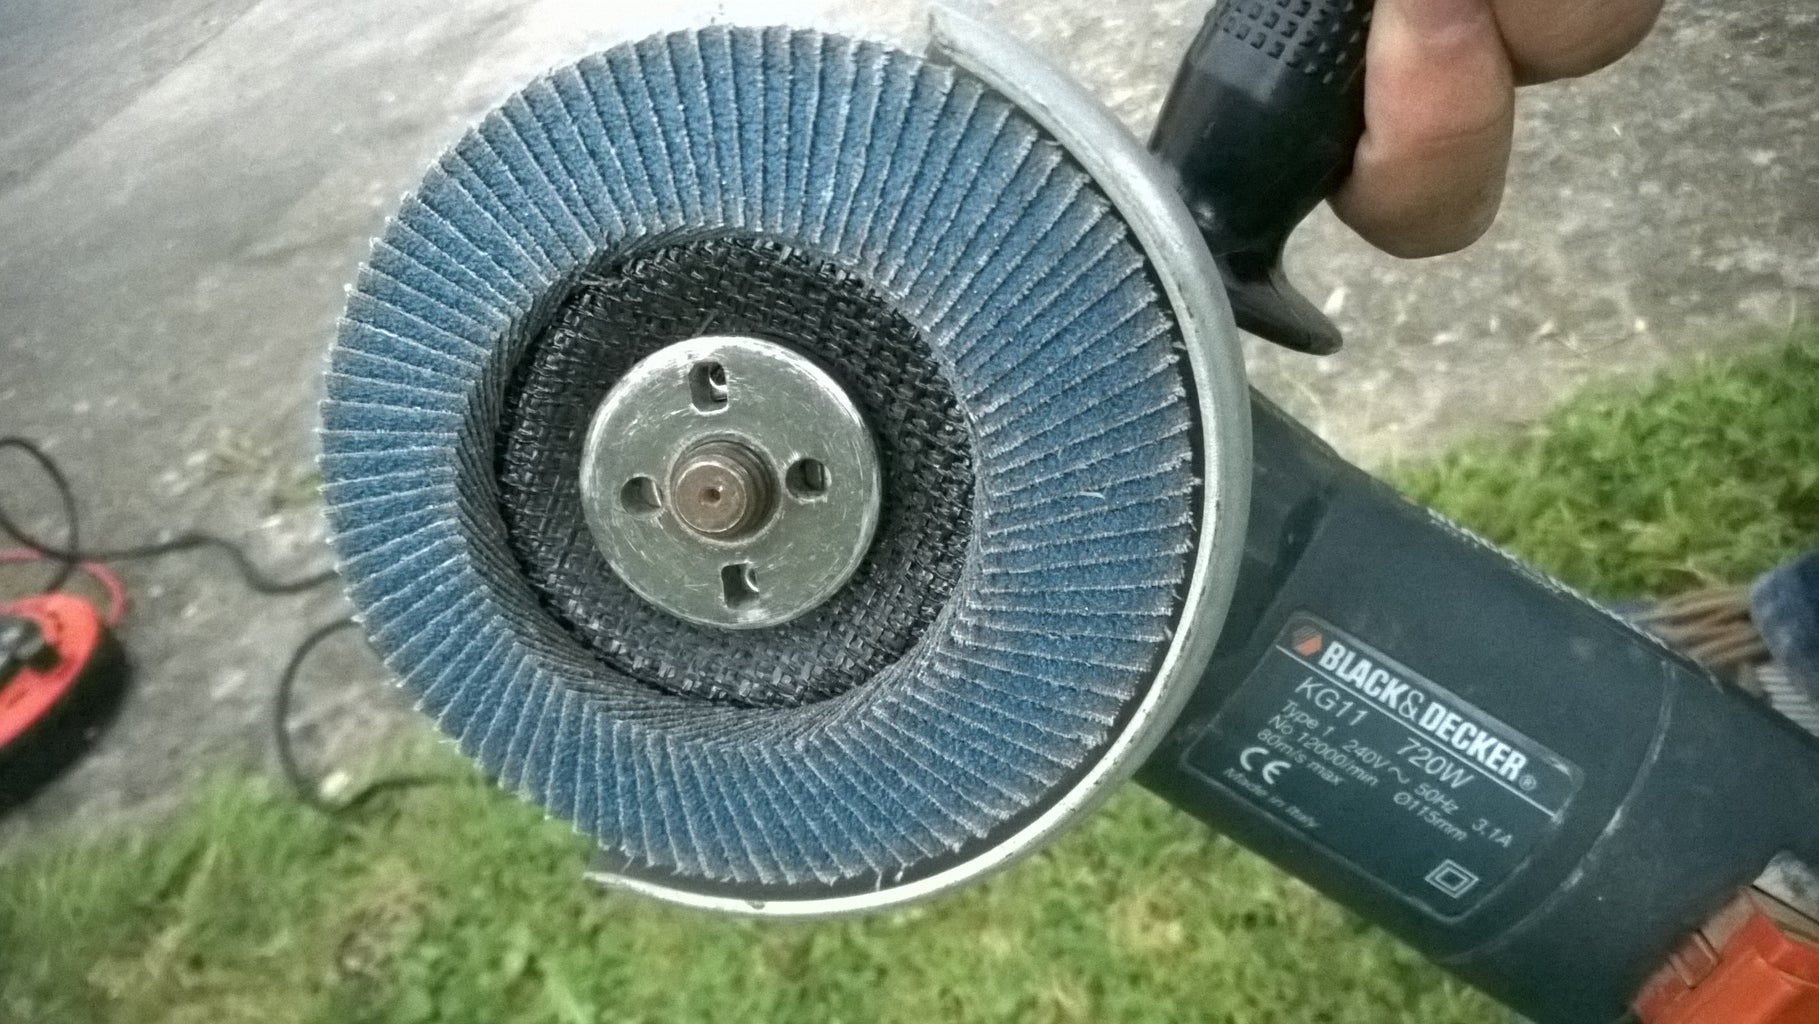 Cleaning the Metal Parts